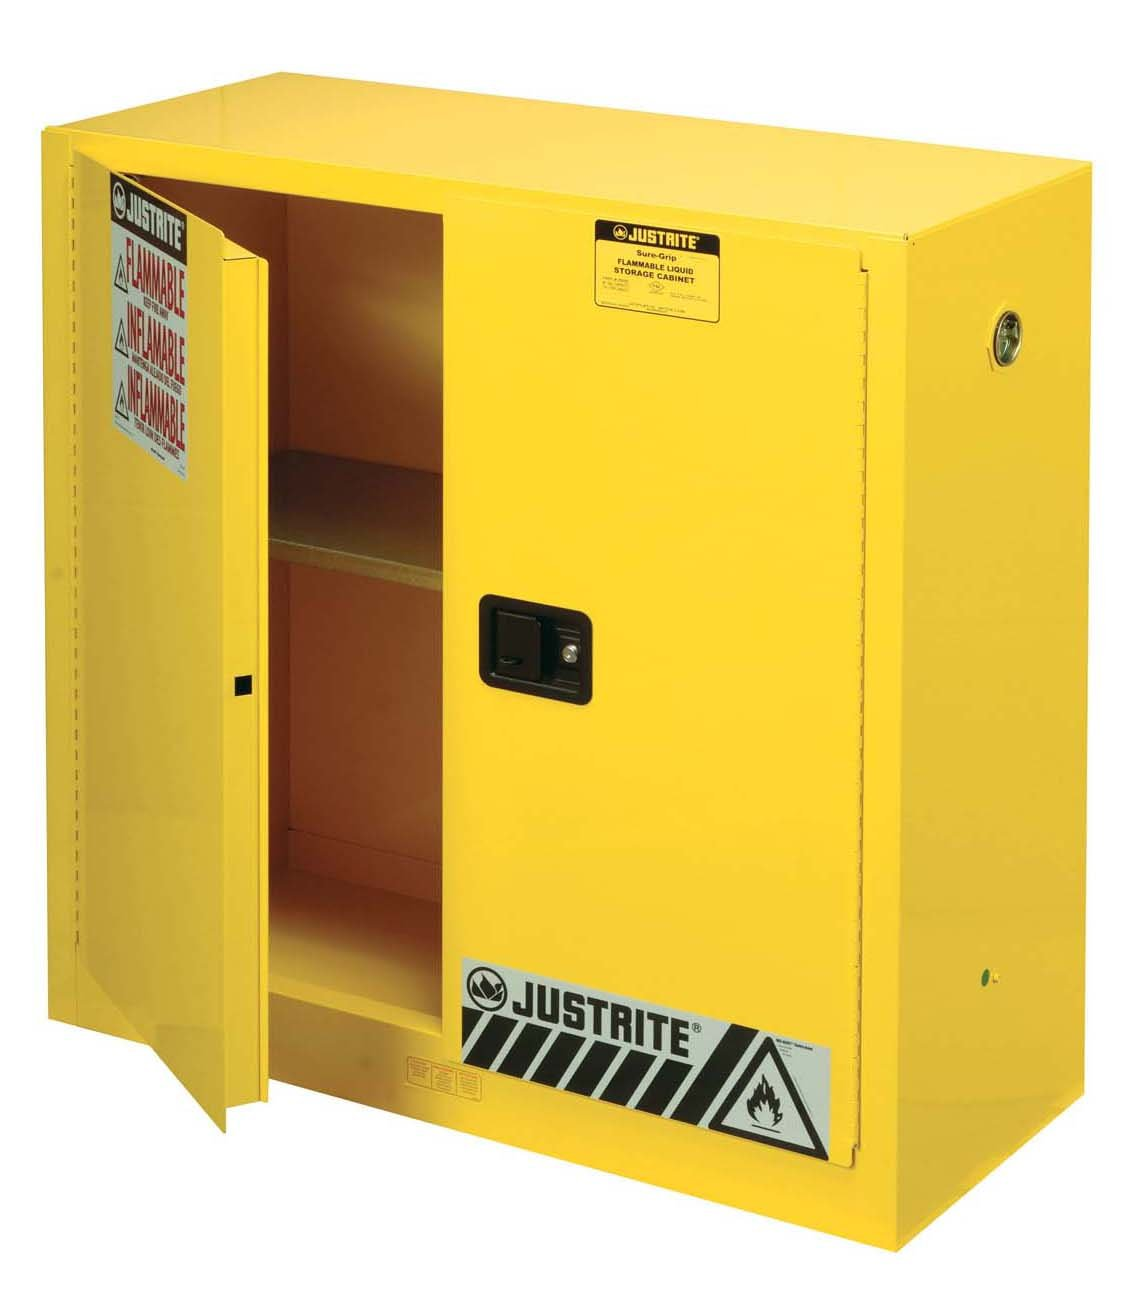 Amazoncom Justrite SureGrip EX Flammable Safety Cabinet - Fireproof chemical cabinet